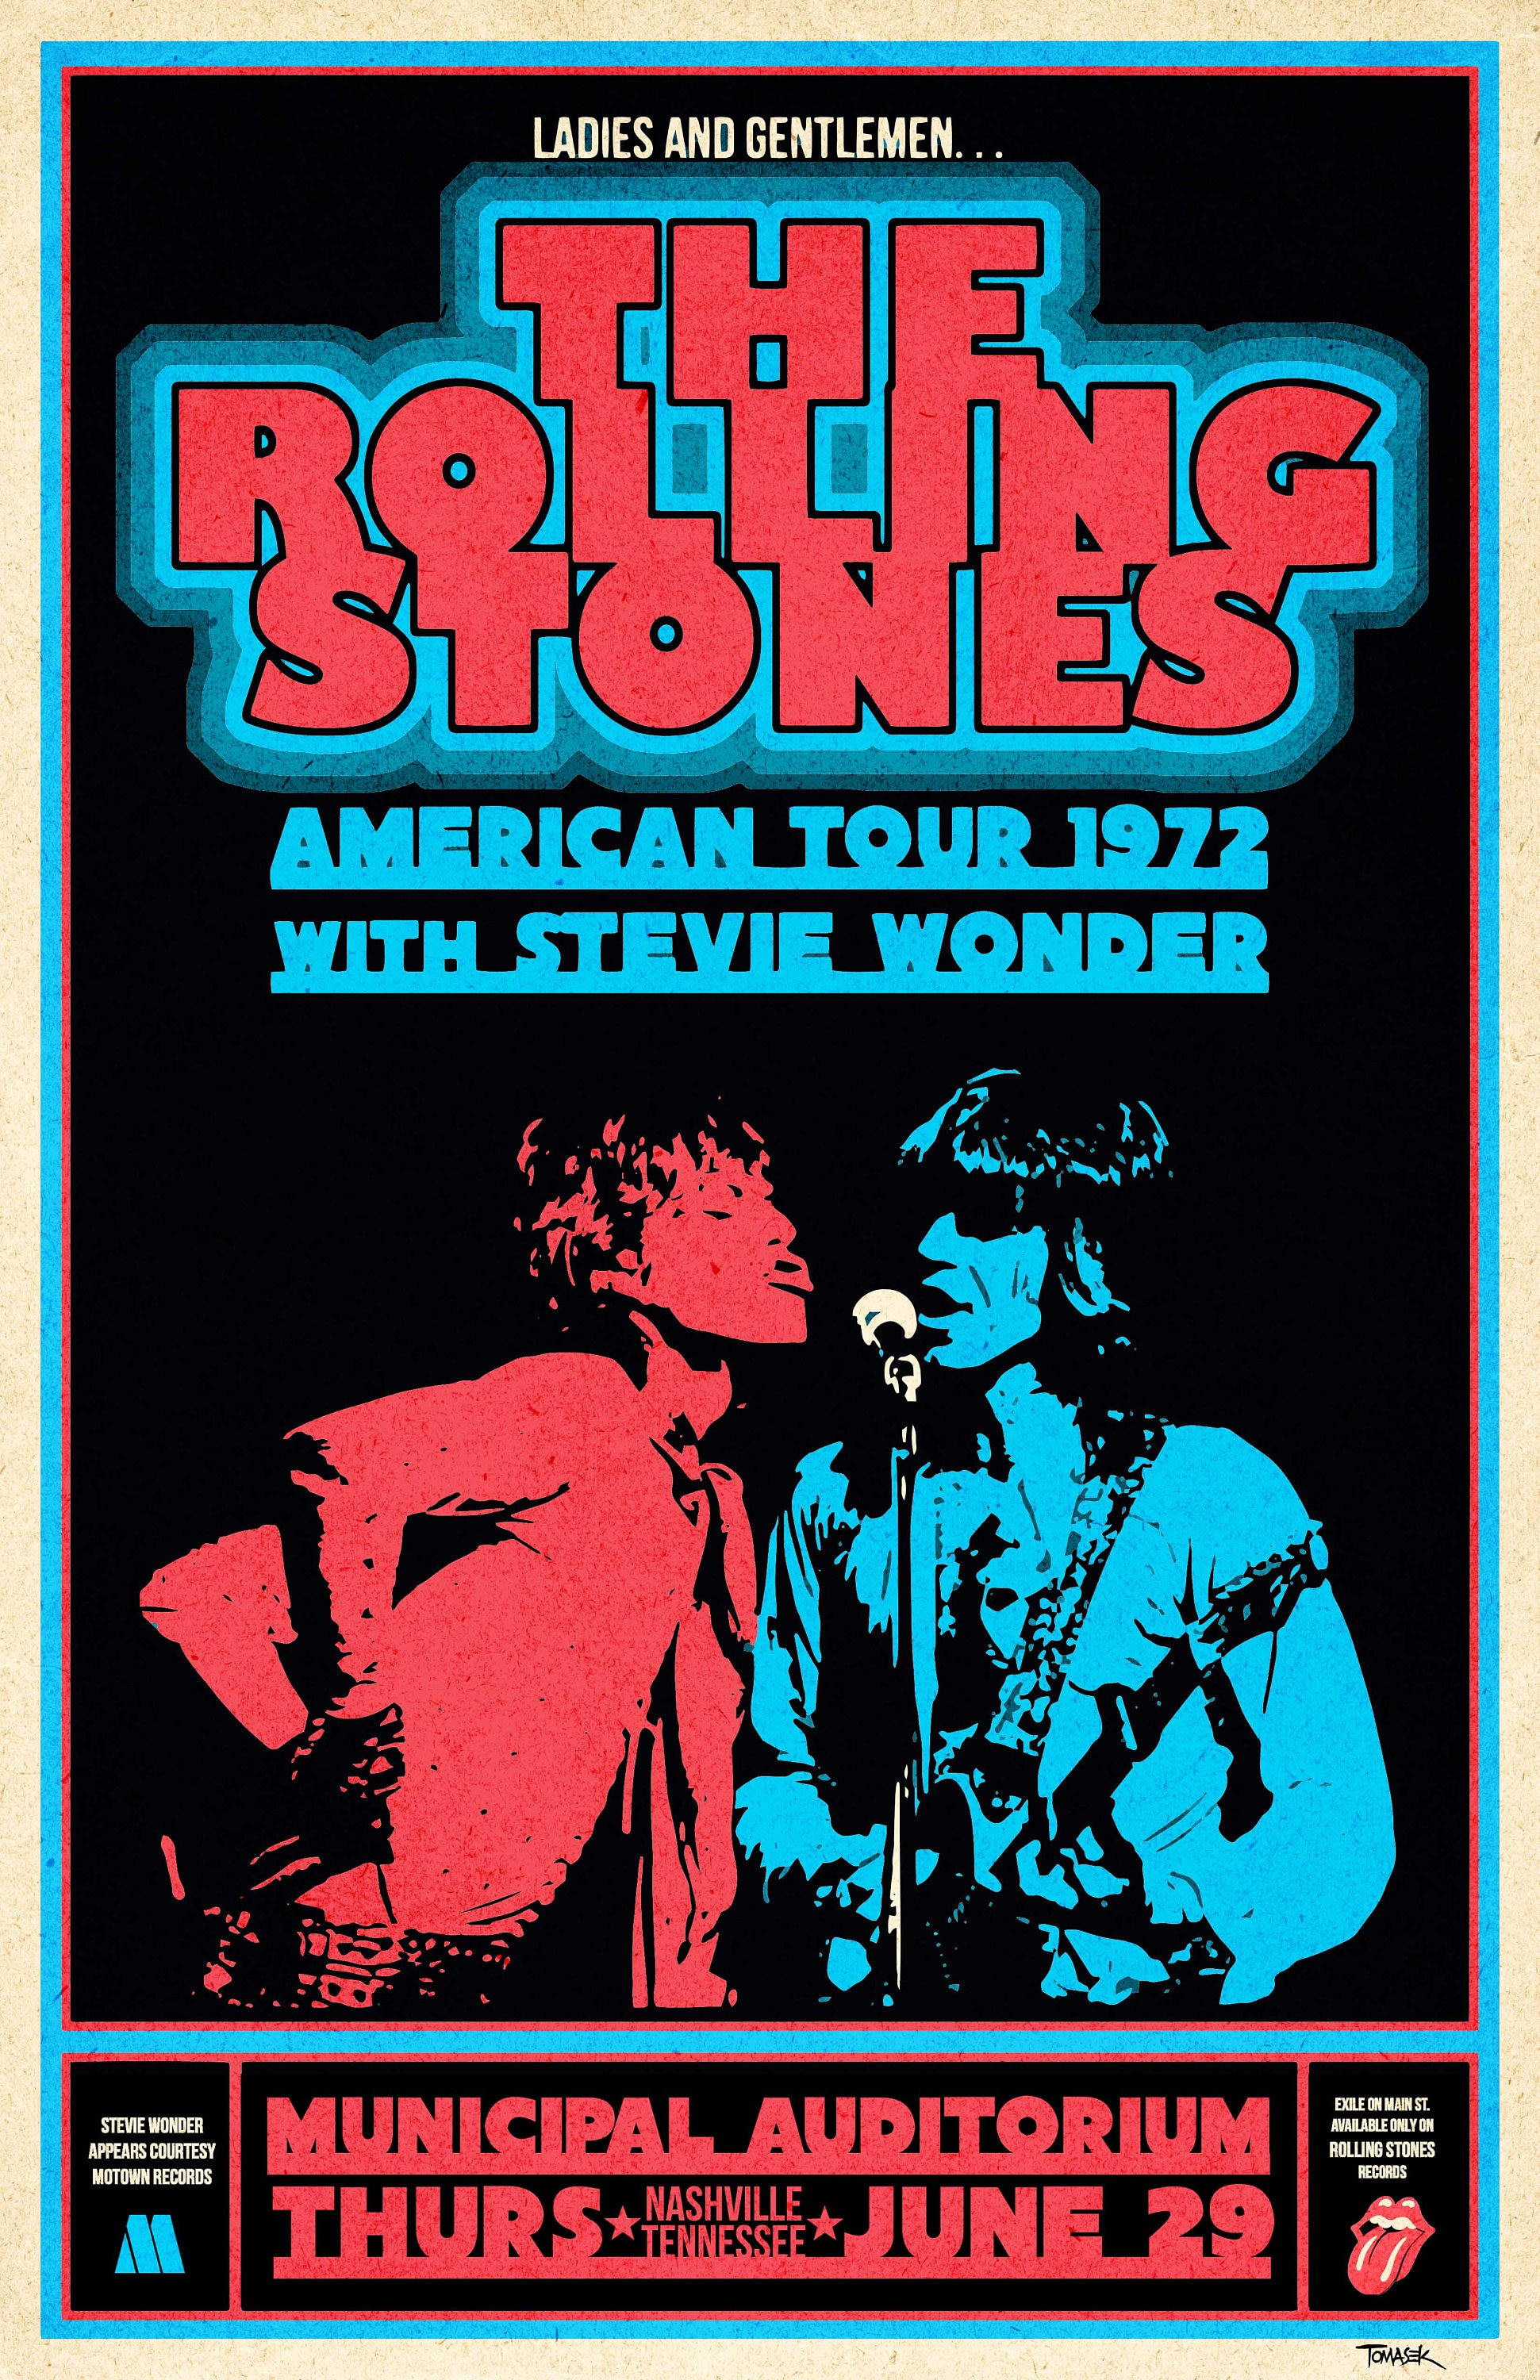 rolling stones 1972 tour poster etsy. Black Bedroom Furniture Sets. Home Design Ideas